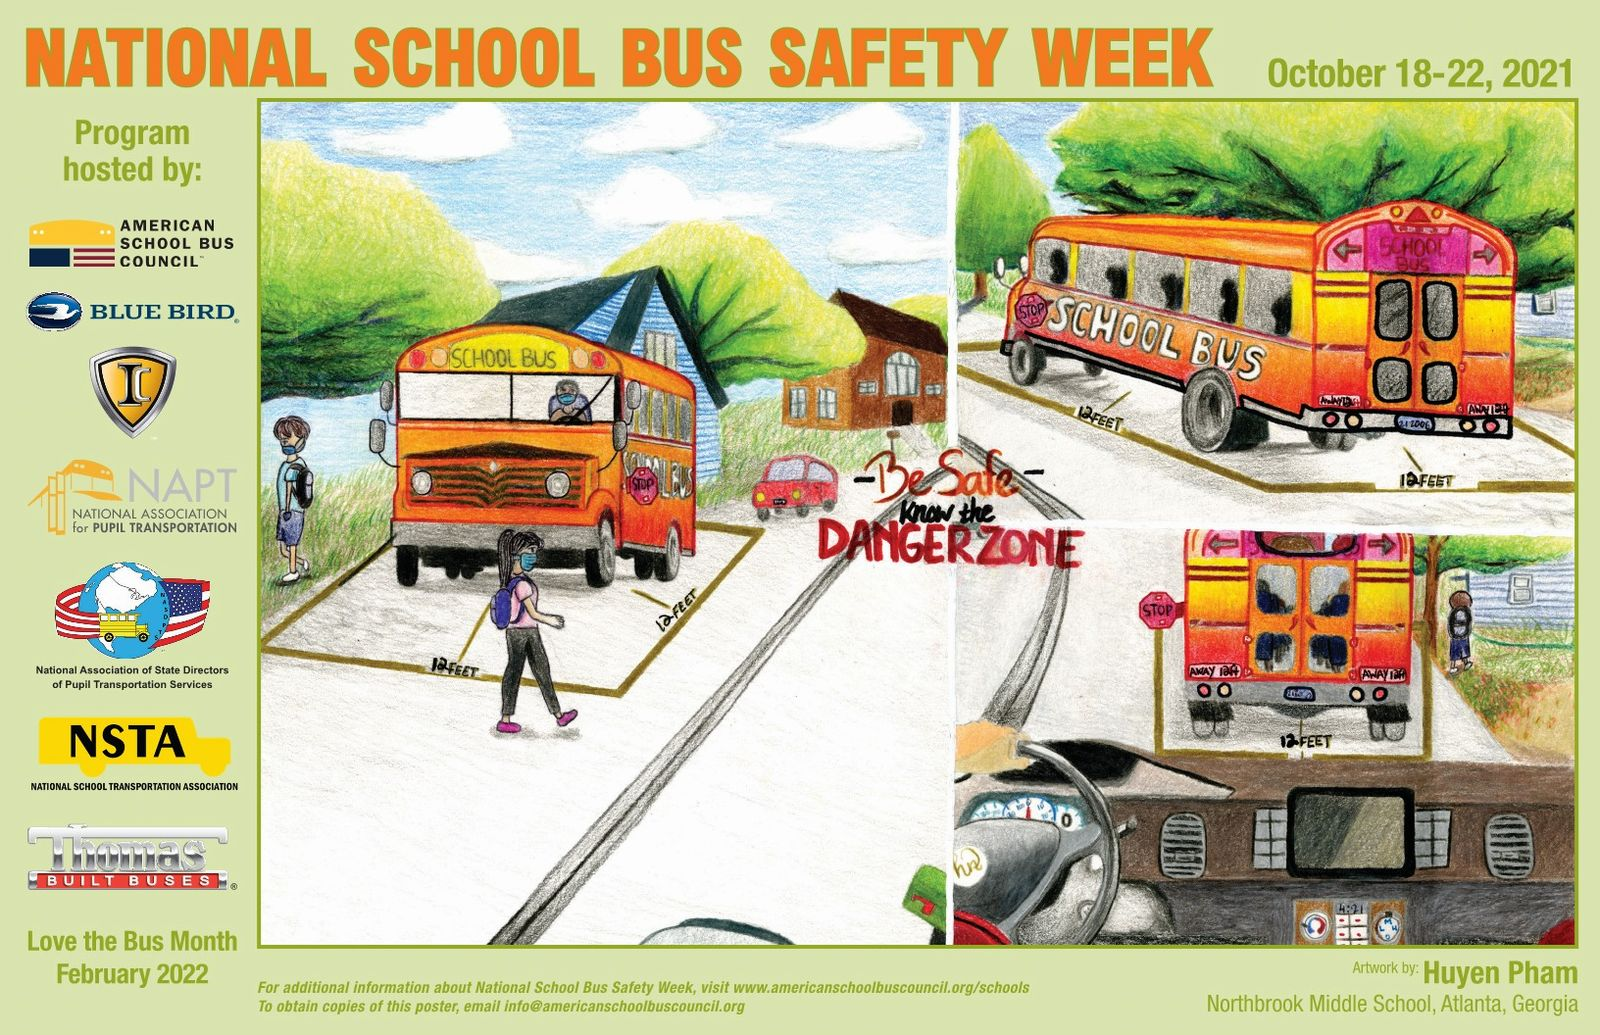 School Bus Safety Week October 18-22 Know the Danger Zone Around the Bus